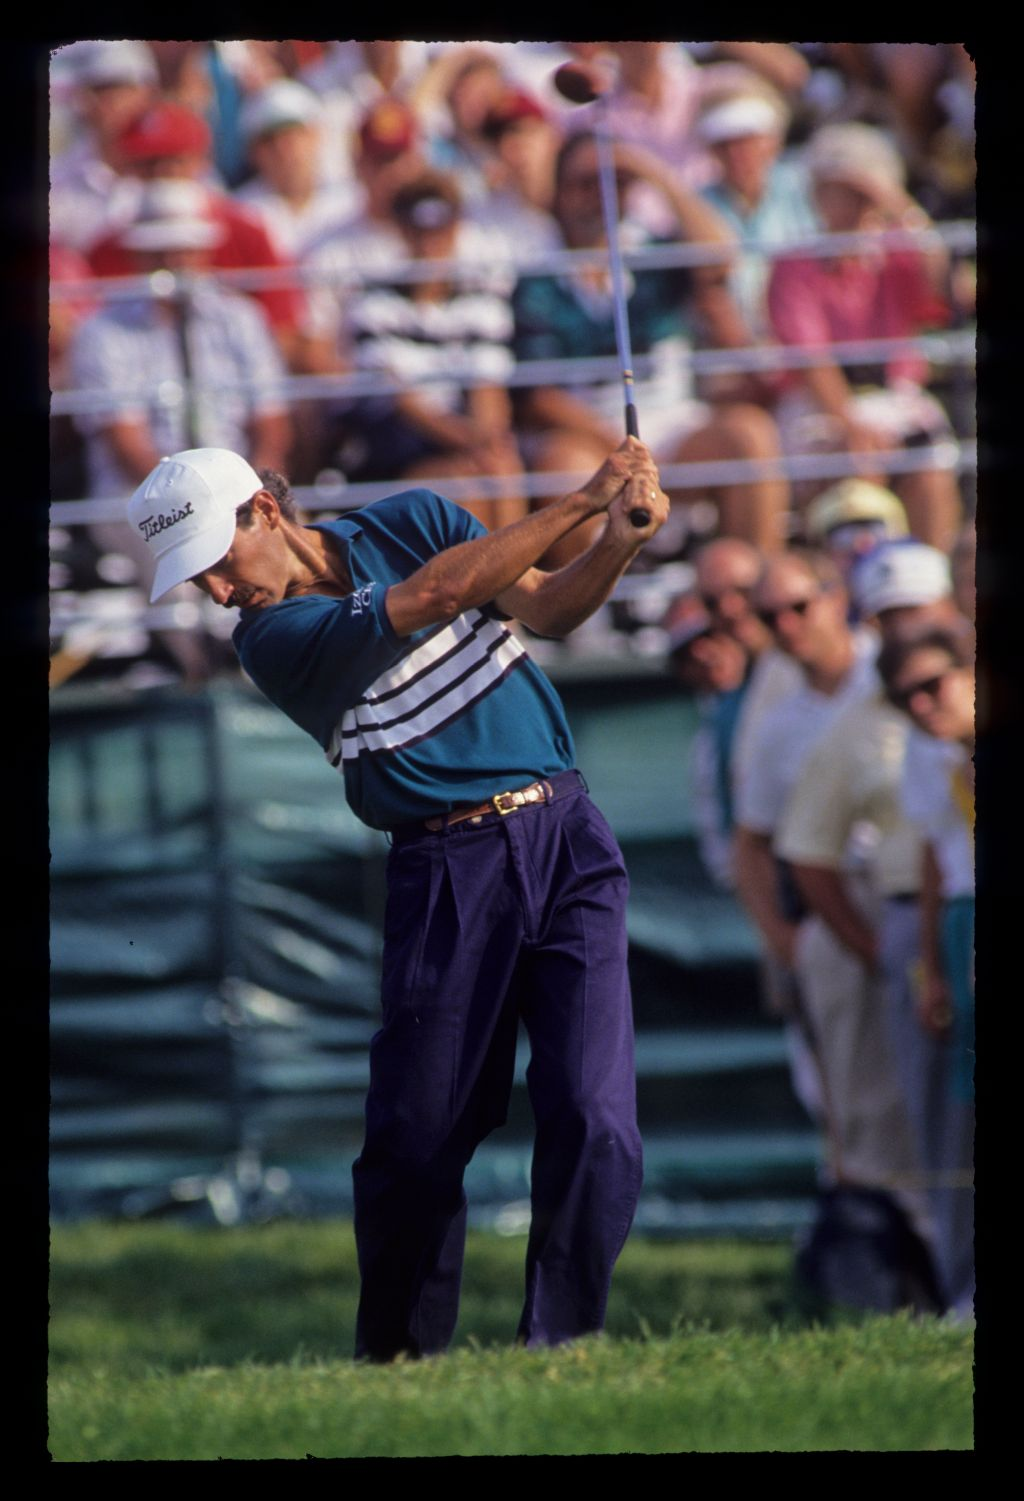 Corey Pavin following through during the 1991 US Open